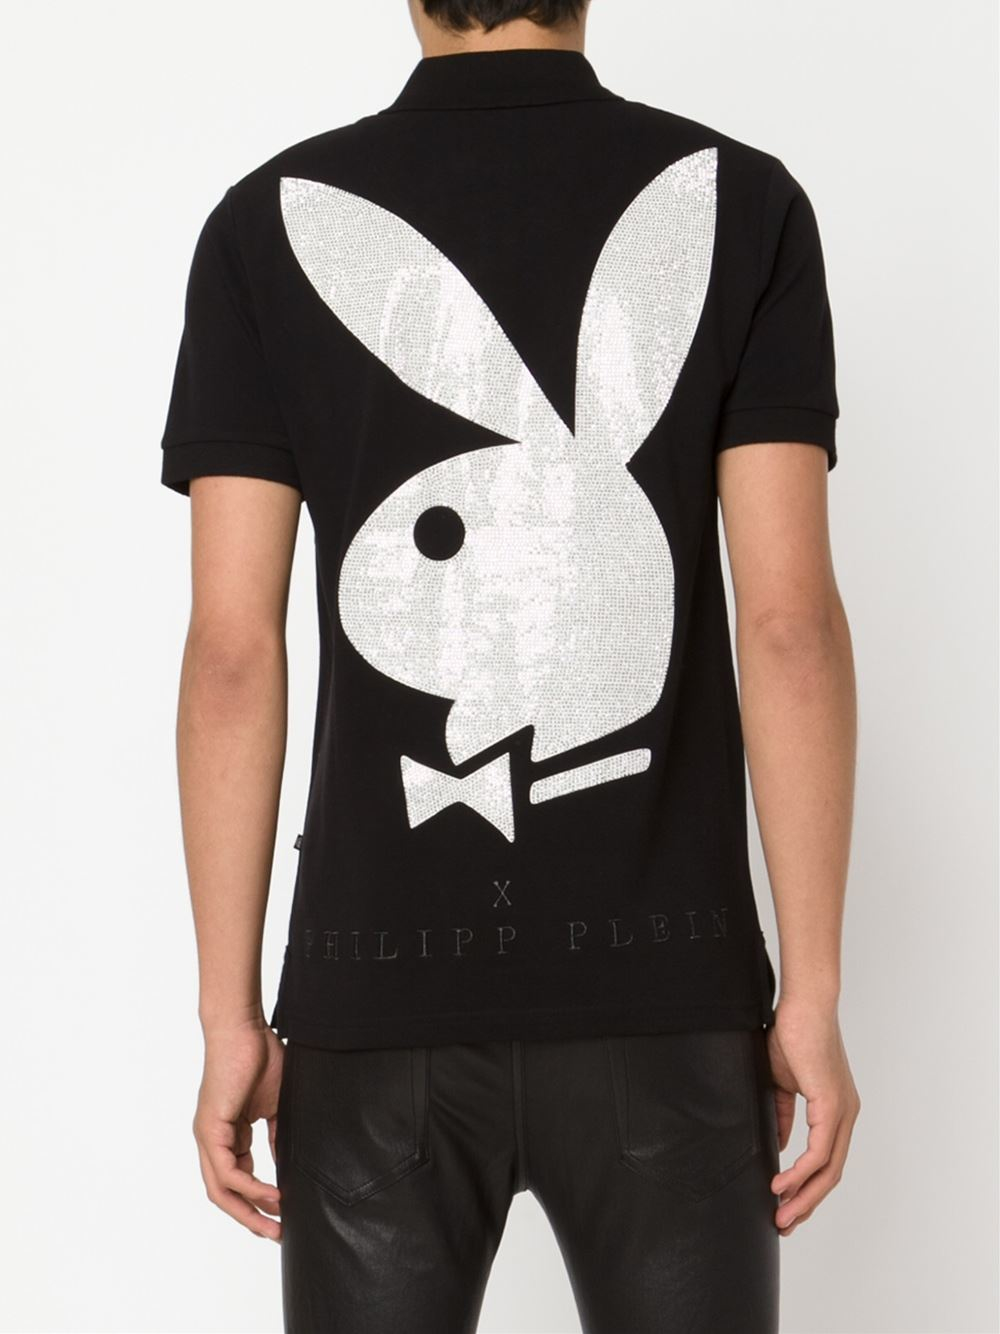 philipp plein playboy bunny polo shirt in black for men lyst. Black Bedroom Furniture Sets. Home Design Ideas